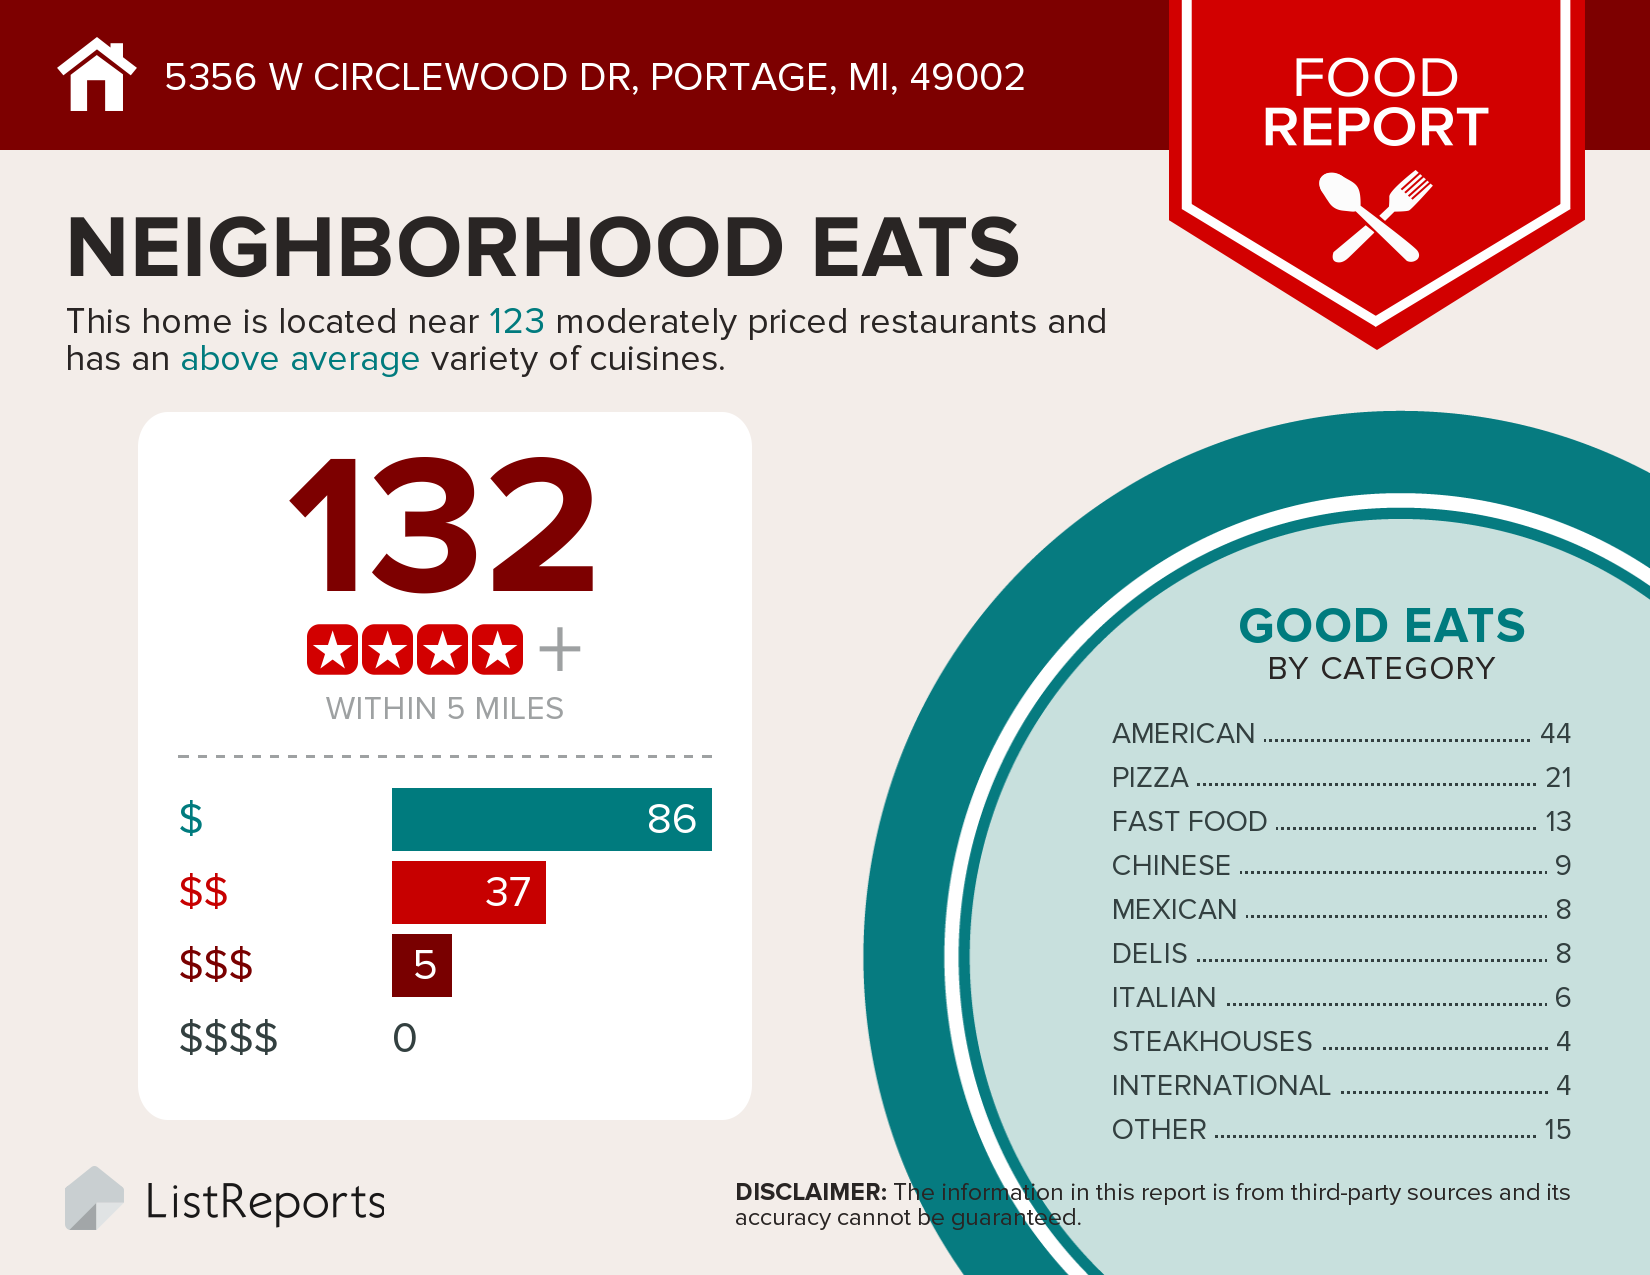 Image of a food report showing there are 132 restaurants within 5 miles of 5356 W Circlewood Dr. Portage MI